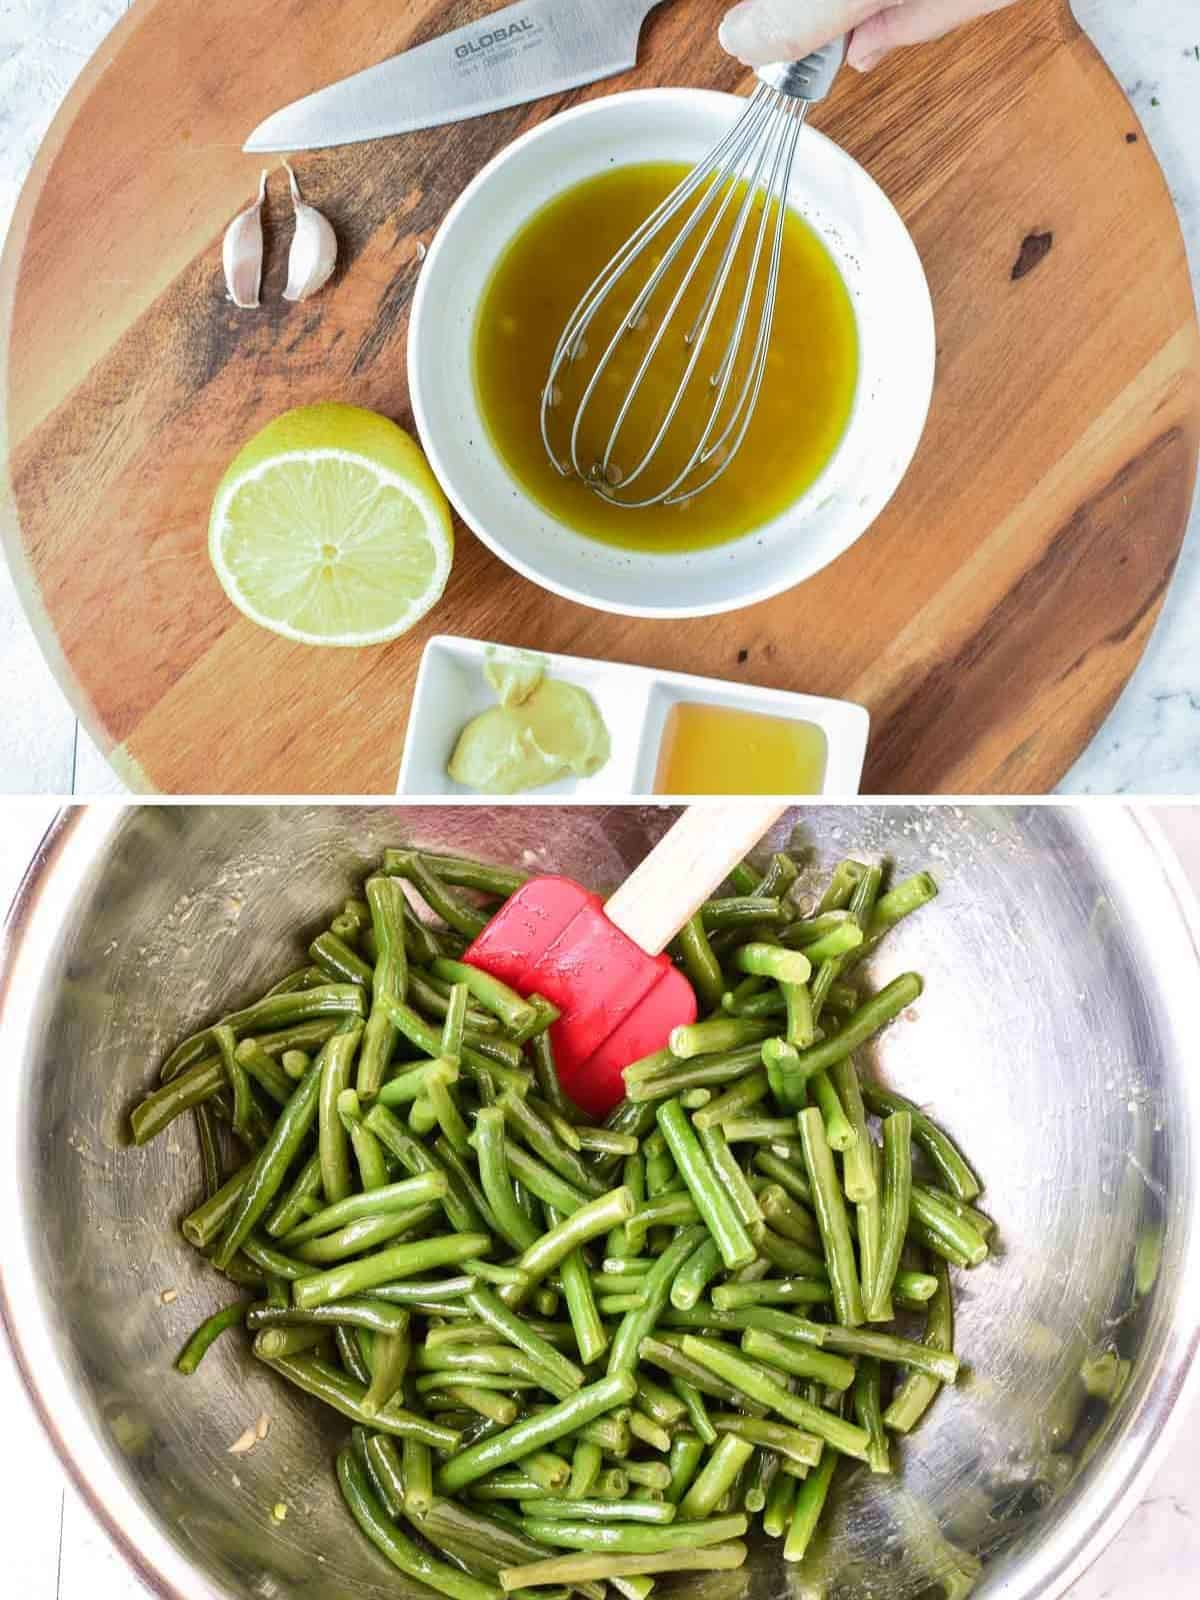 two images - top image white bowl on wooden board filled with salad dressing, half a lemon on the side and small white dish with honey and mustard; bottom image green beans and dressing in stainless steel bowl with red spatula